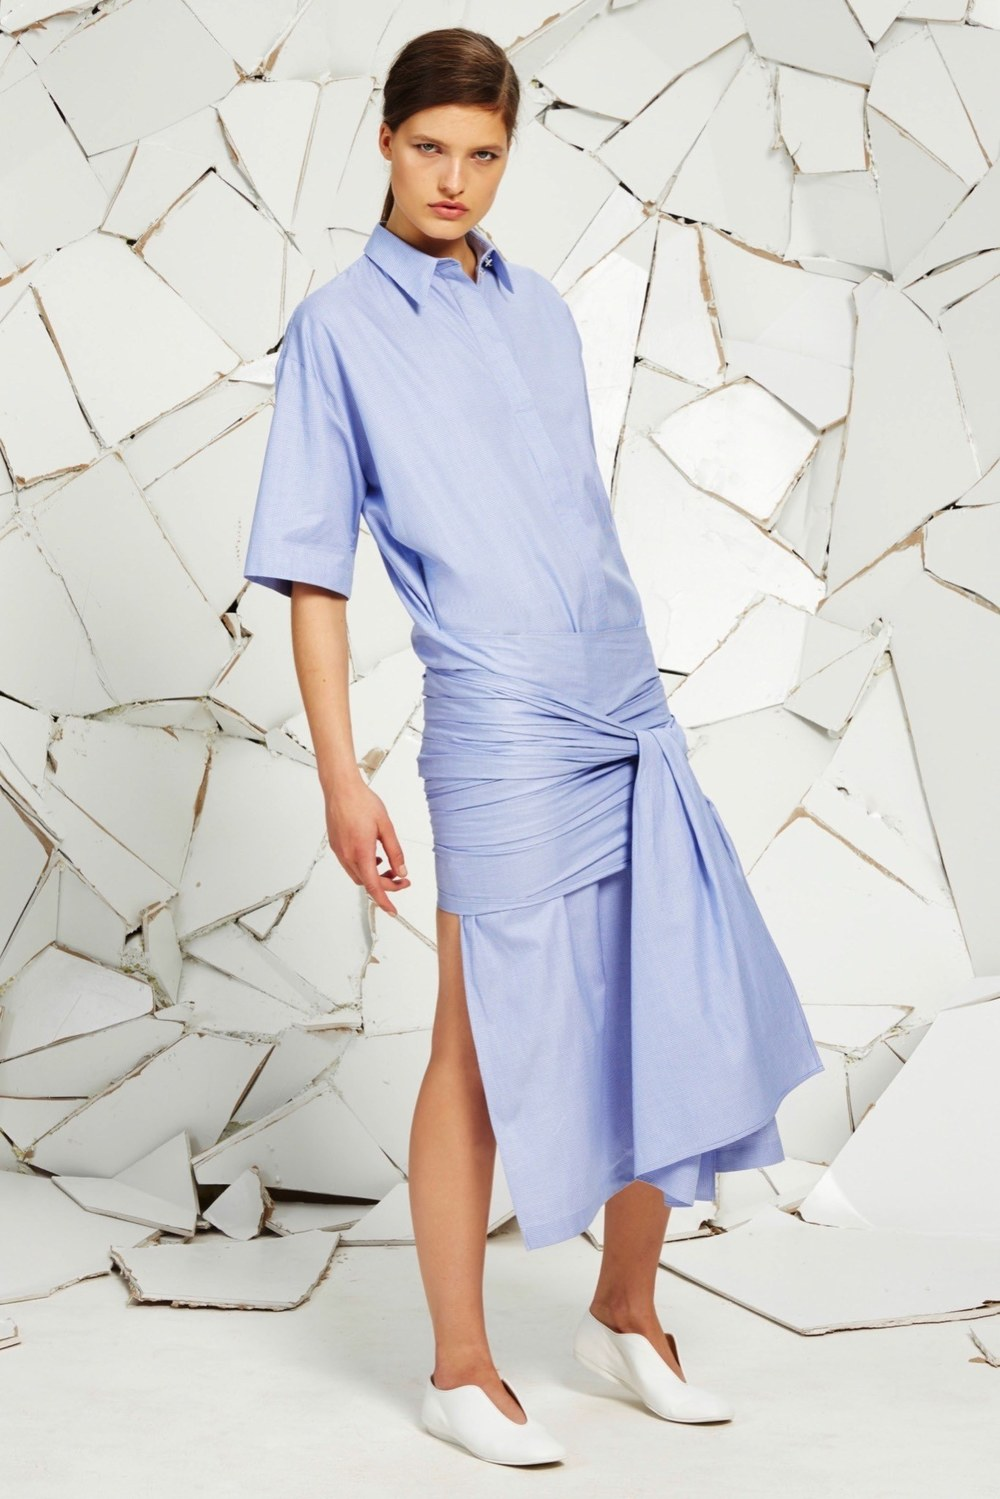 A look from Stella McCartney's Resort 2016 collection.  Photo source:   Vogue   Runway.